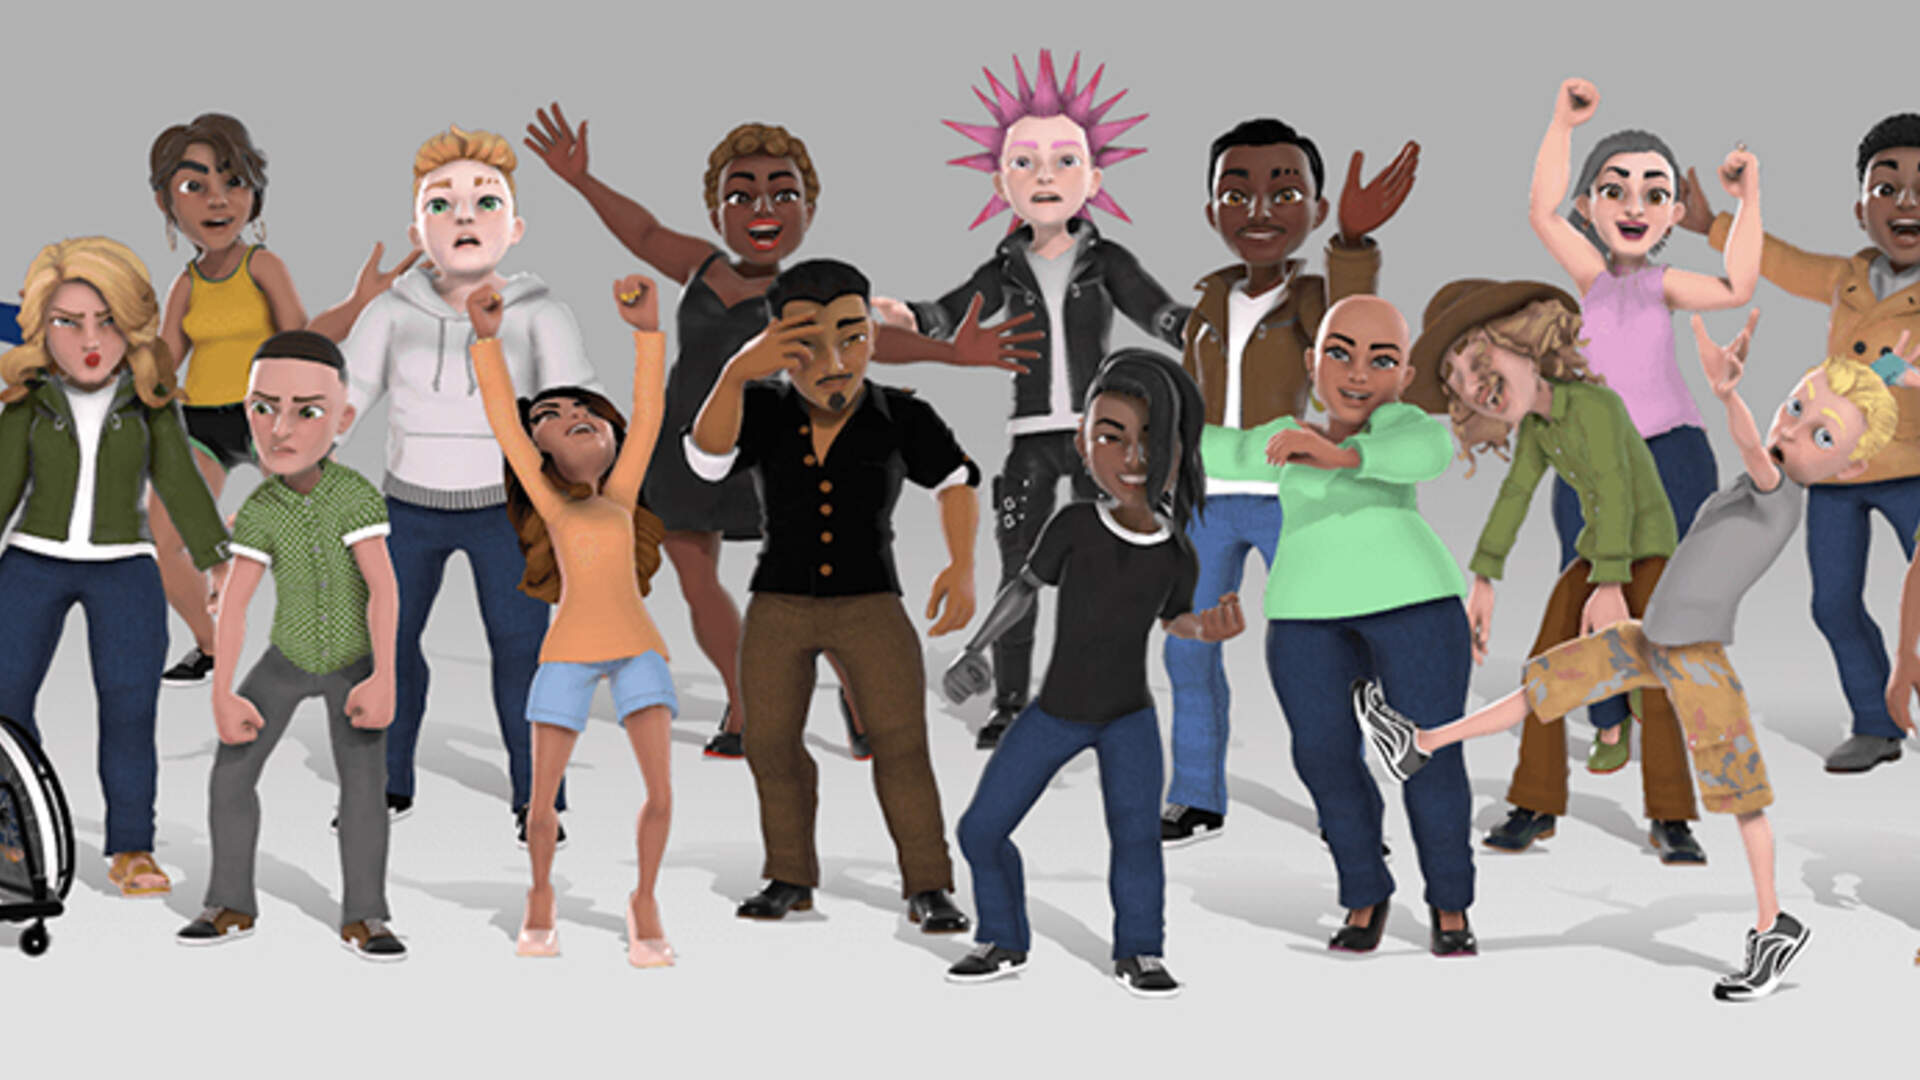 New Xbox Avatars Are Live For Everyone in Latest Xbox One Update